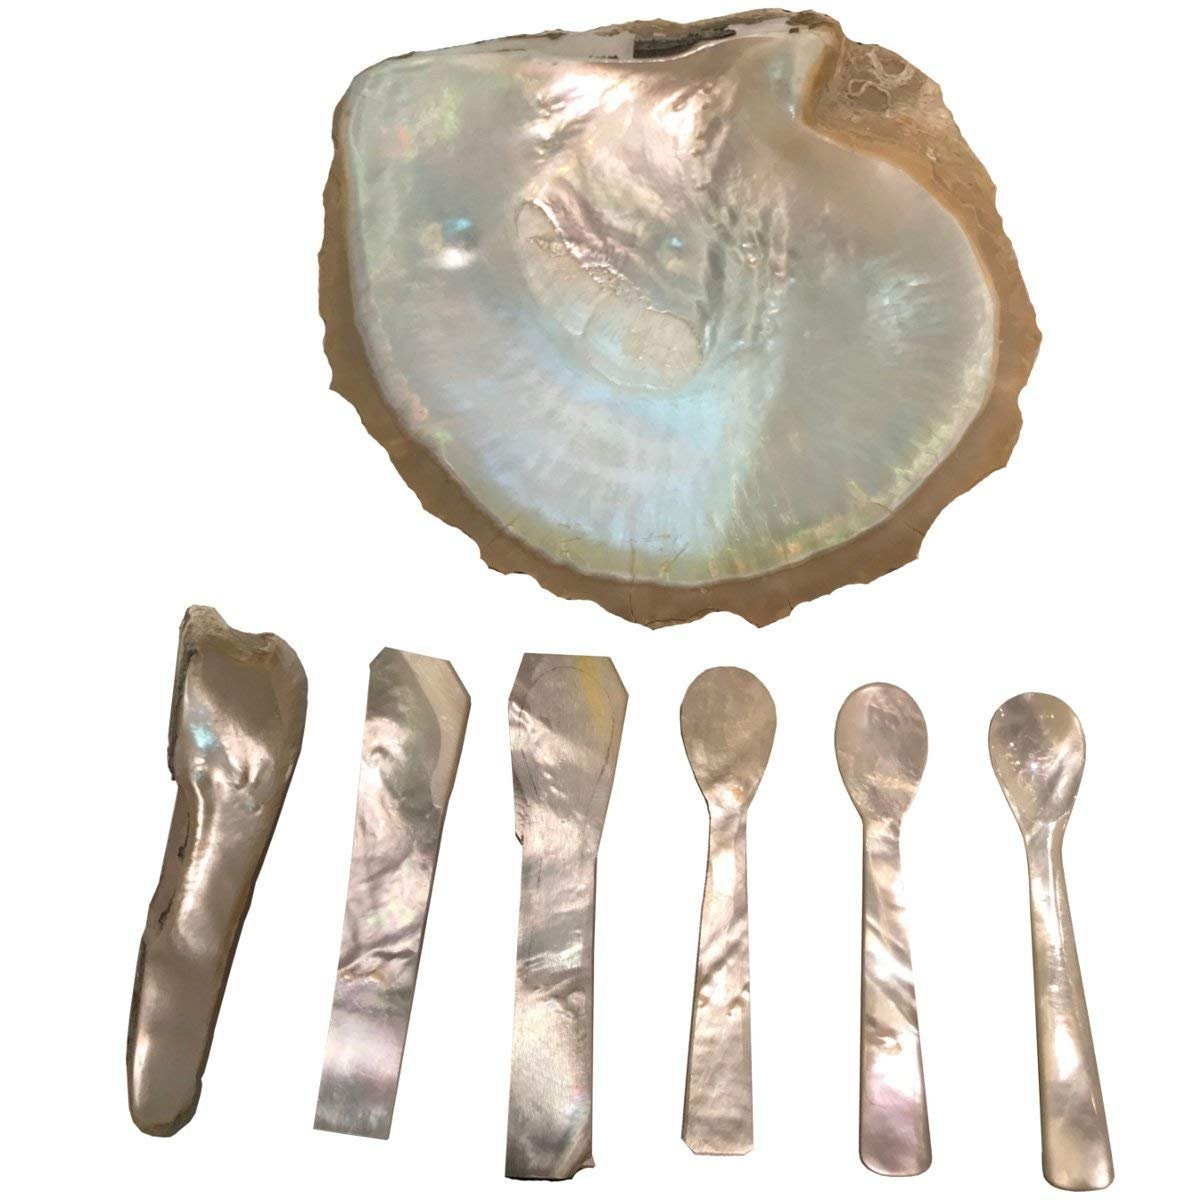 Deluxe Mother of Pearl Caviar Spoon Egg Spoon L 11/Ã/'/Â/cm Set of 2/Ã/'/Â/Mother of Pearl Rectangular//High-Quality//Sturdy Quality by Silberkanne